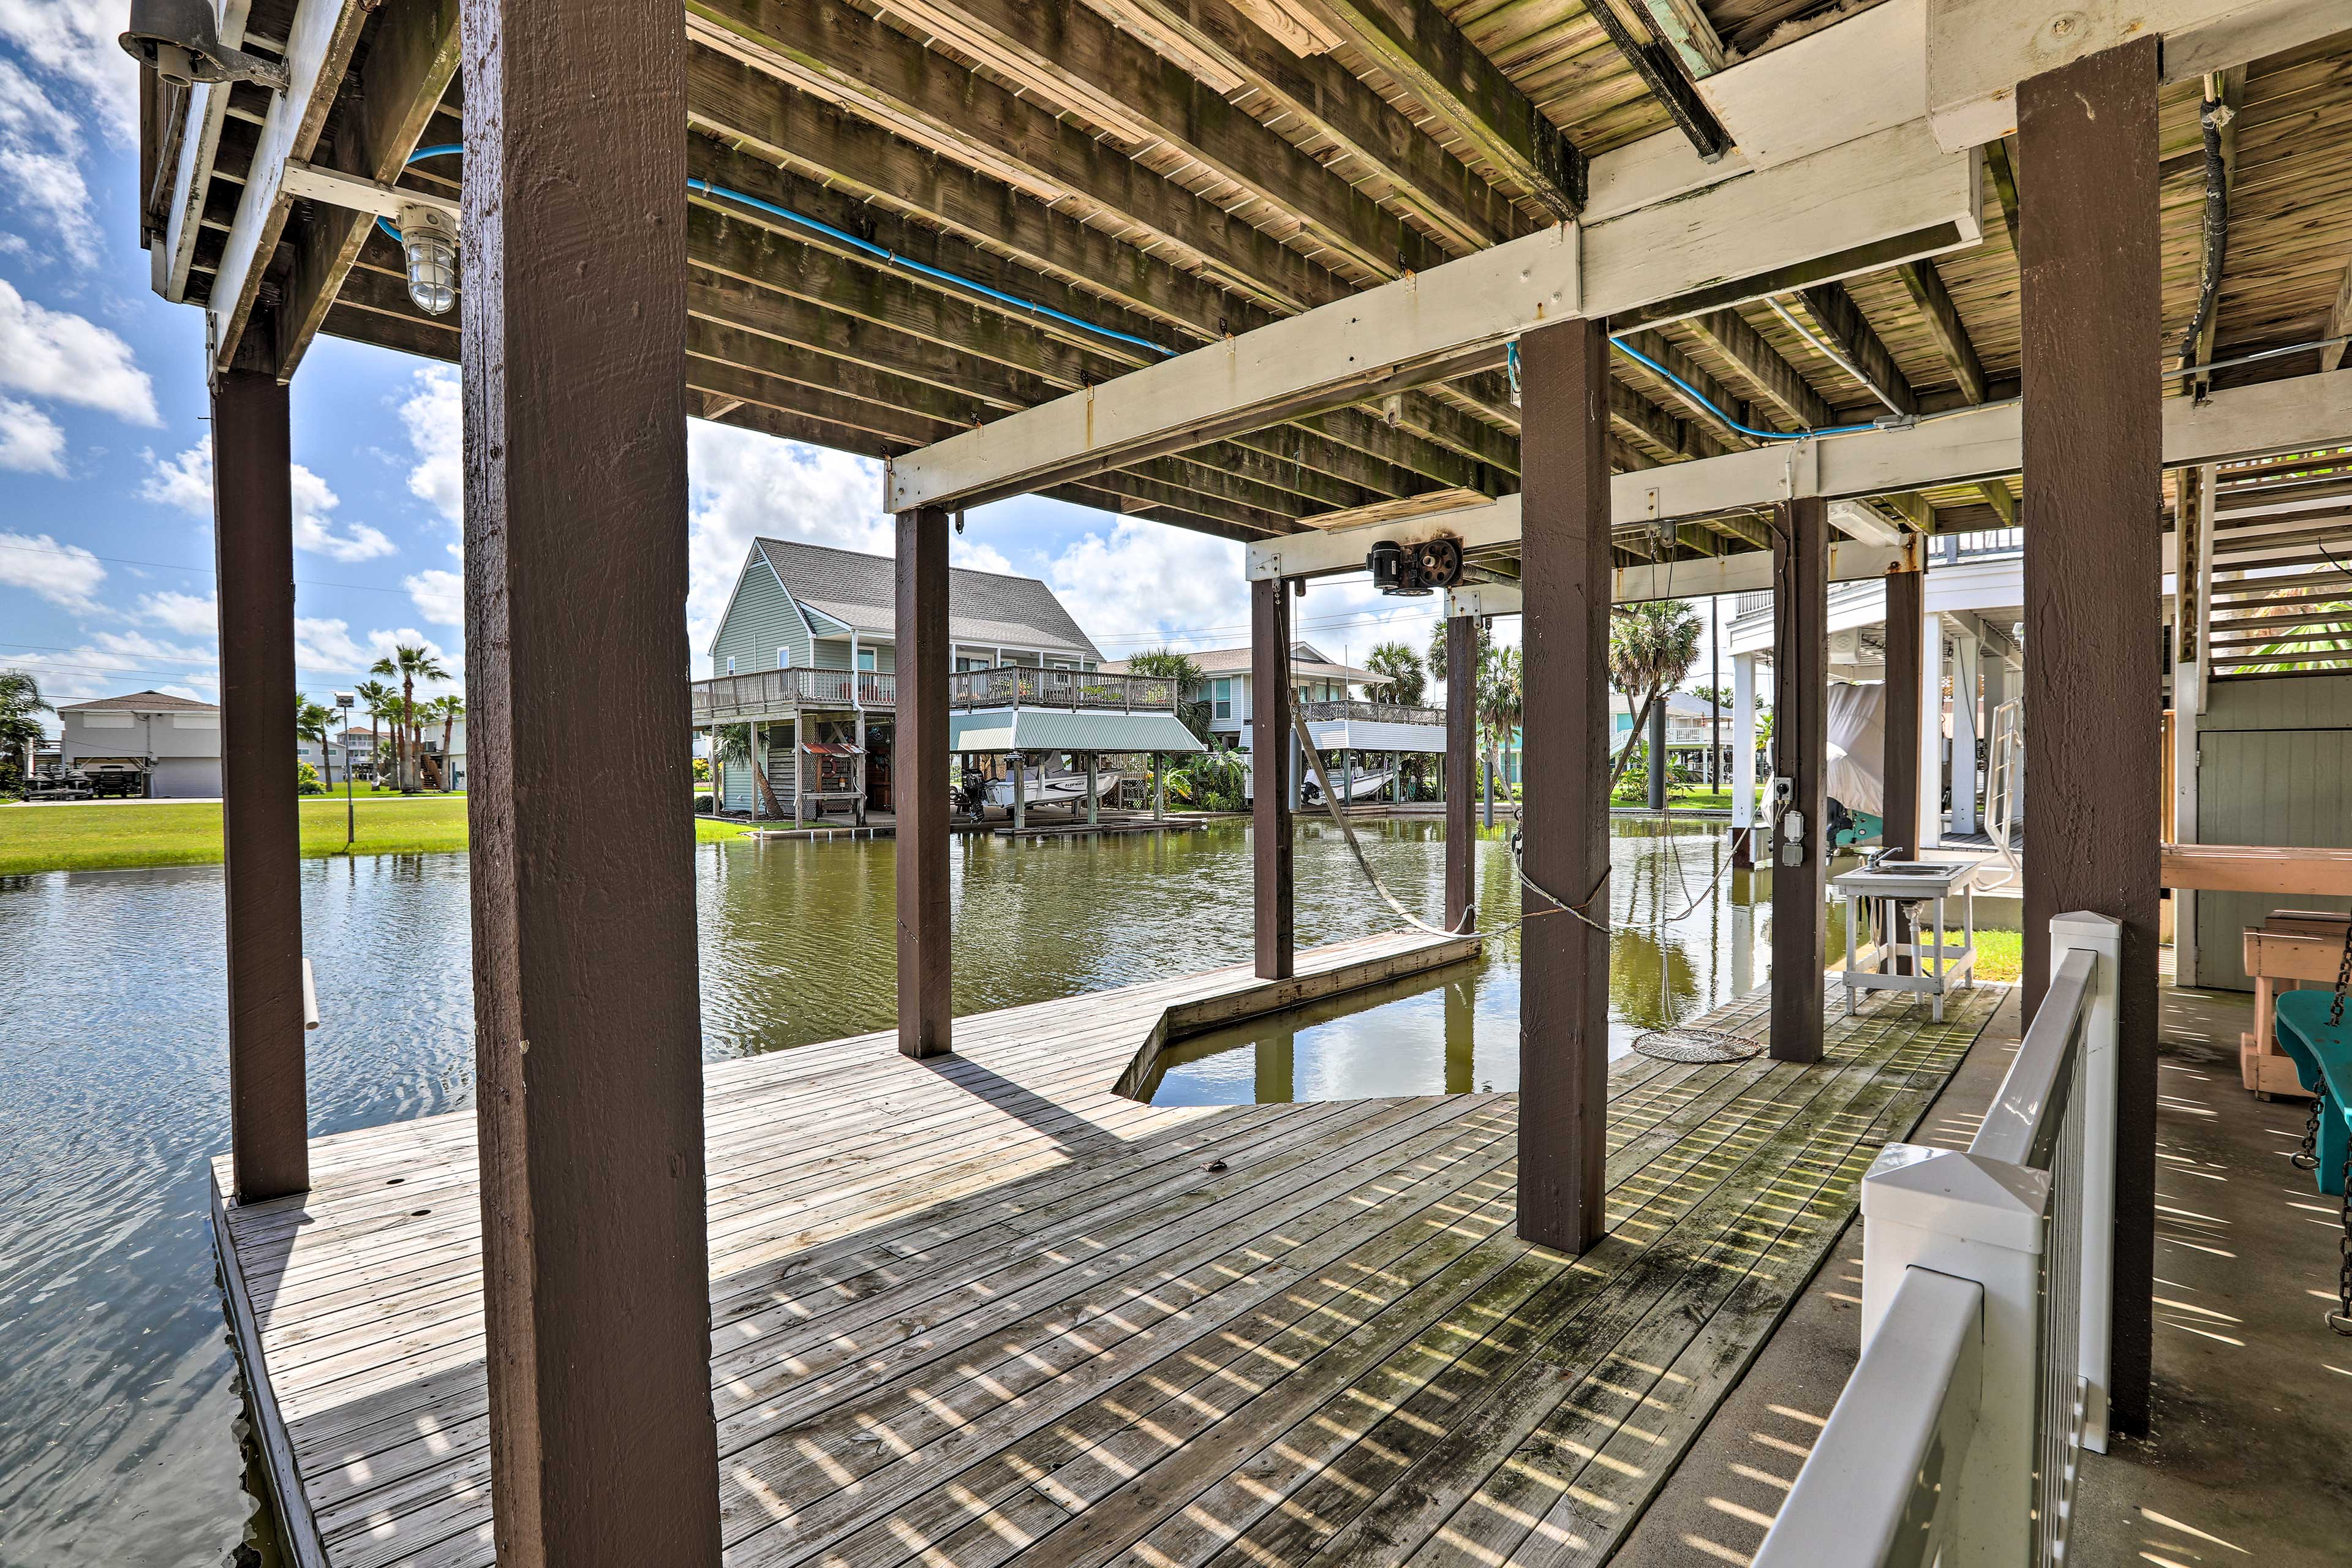 Bring your own boat, as this home offers a boat lift and boat parking.